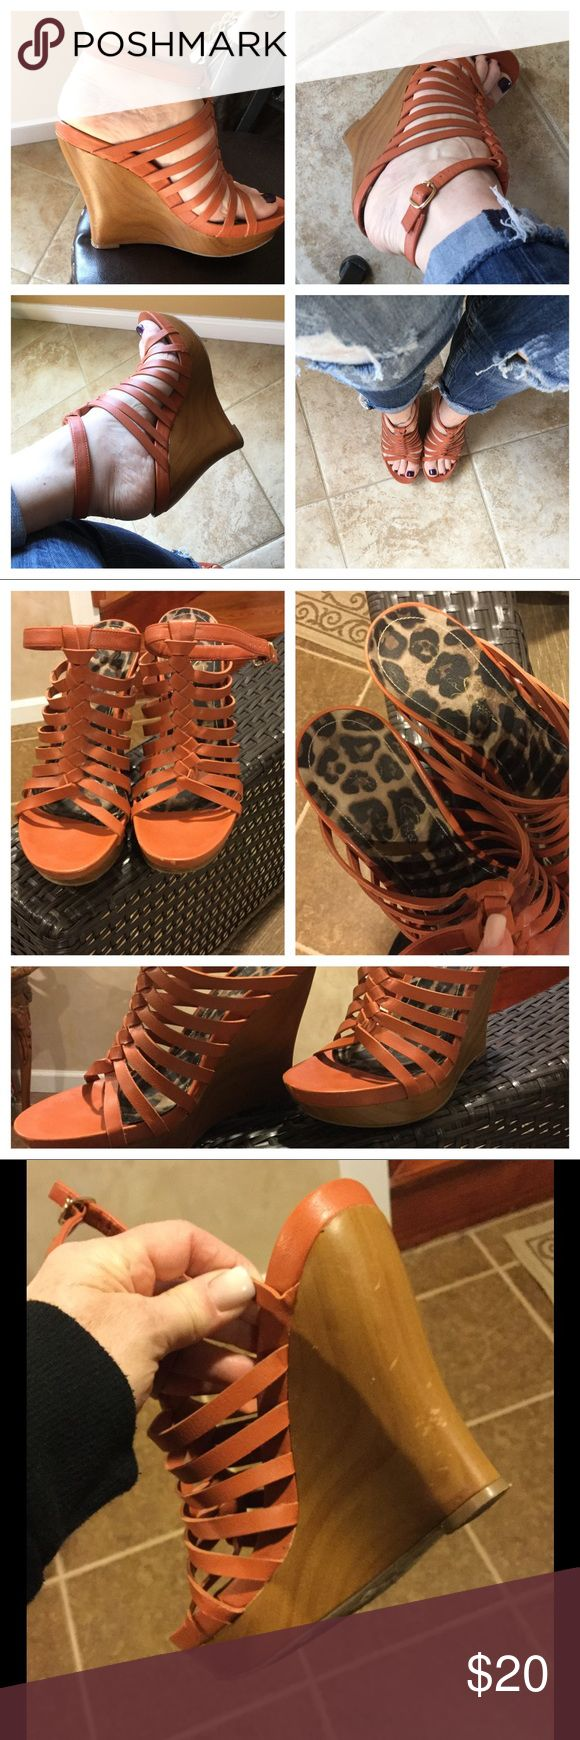 😻Jessica Simpson wedge shoe😻 Beautiful cognac color wedge shoe from Jessica Simpson...this is a statement shoe in your closet...can be worn dressy or casual..cute leopard lining on the inside..slightly damaged c pic/ good condition..nice strap that goes around ankle..comfortable to wear👍🏻 Jessica Simpson Shoes Wedges